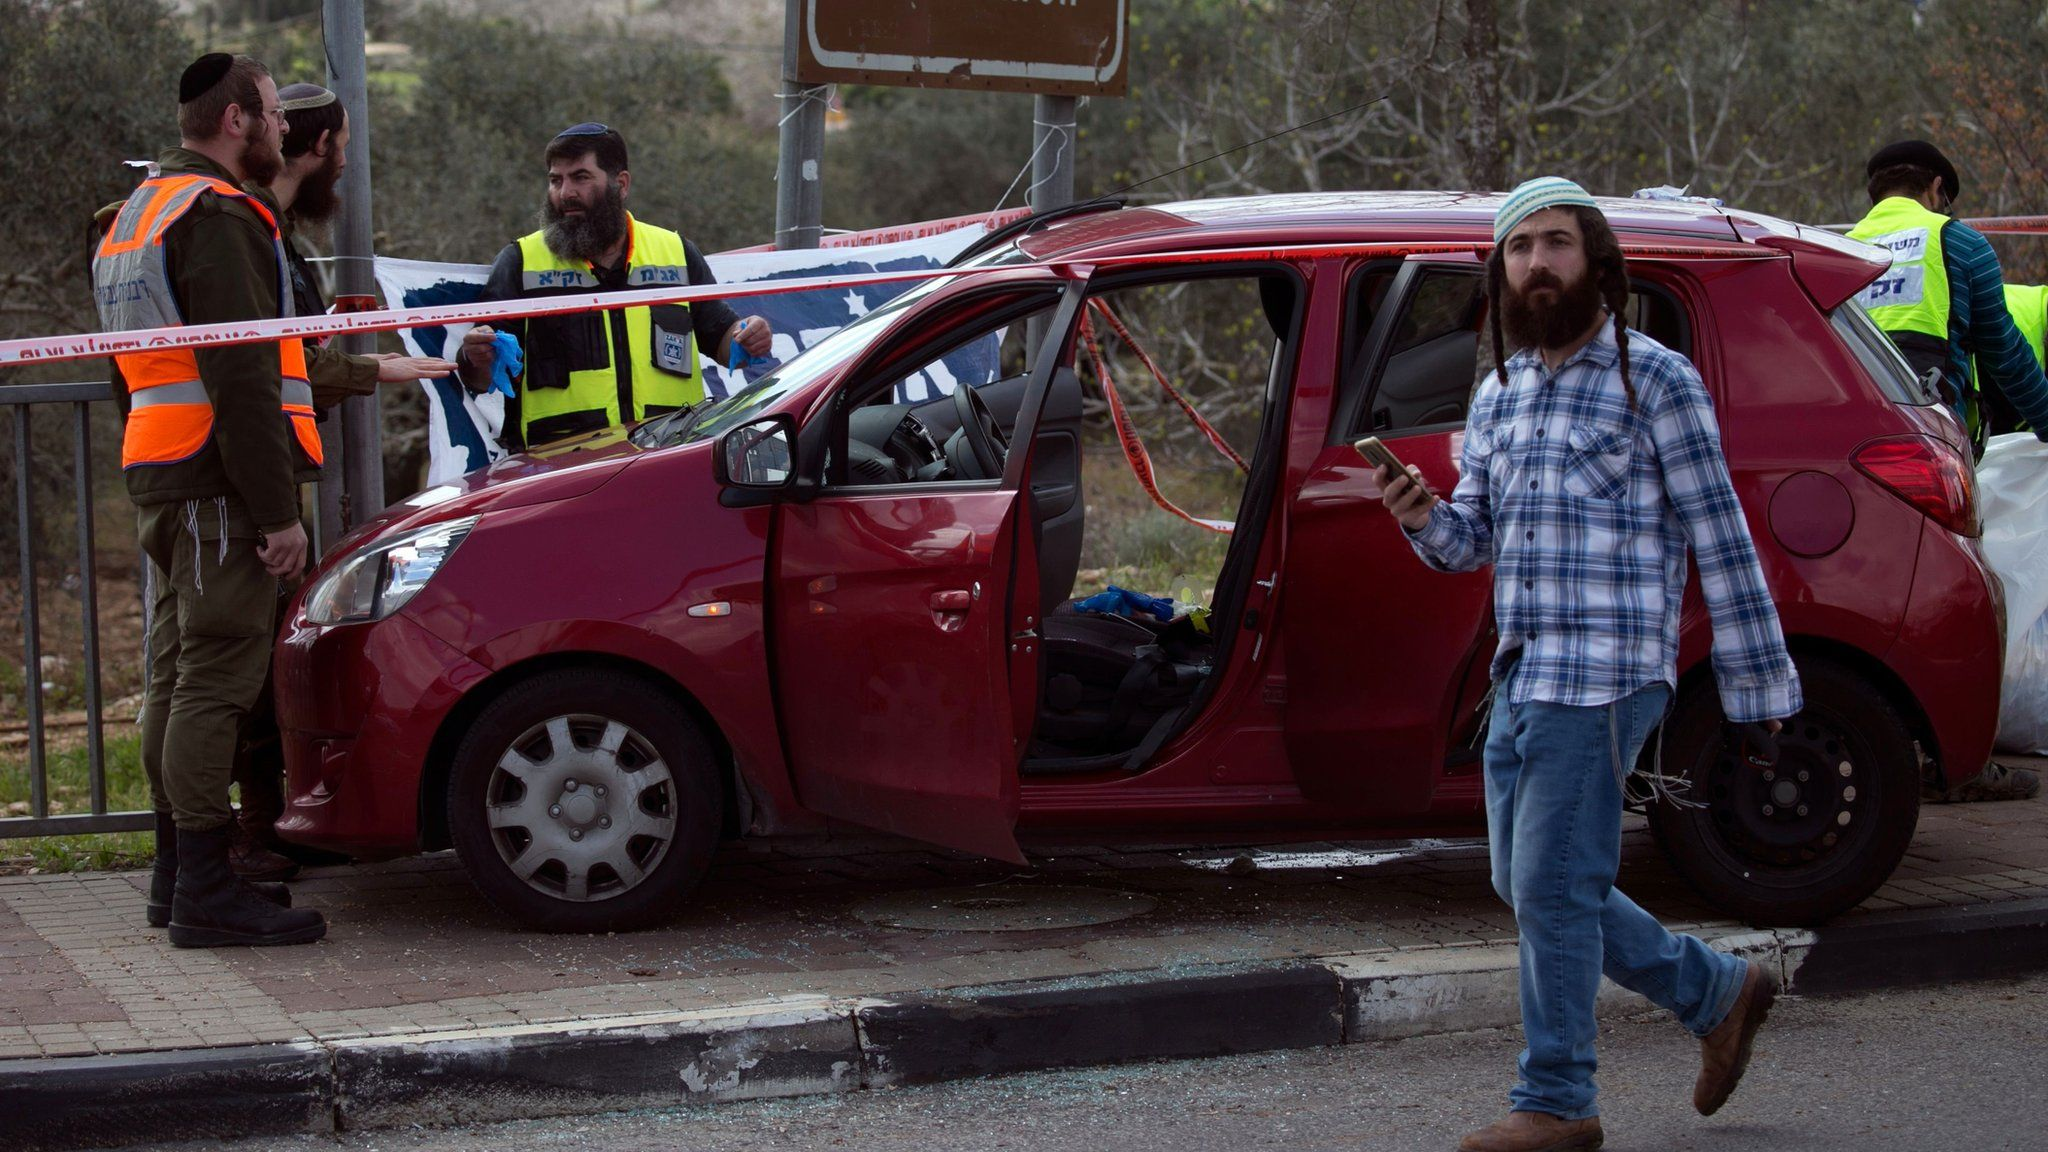 Israeli forensic specialists inspect a a car at the site of a deadly attack near the Jewish settlement of Ariel in the occupied West Bank (17 March 2019)